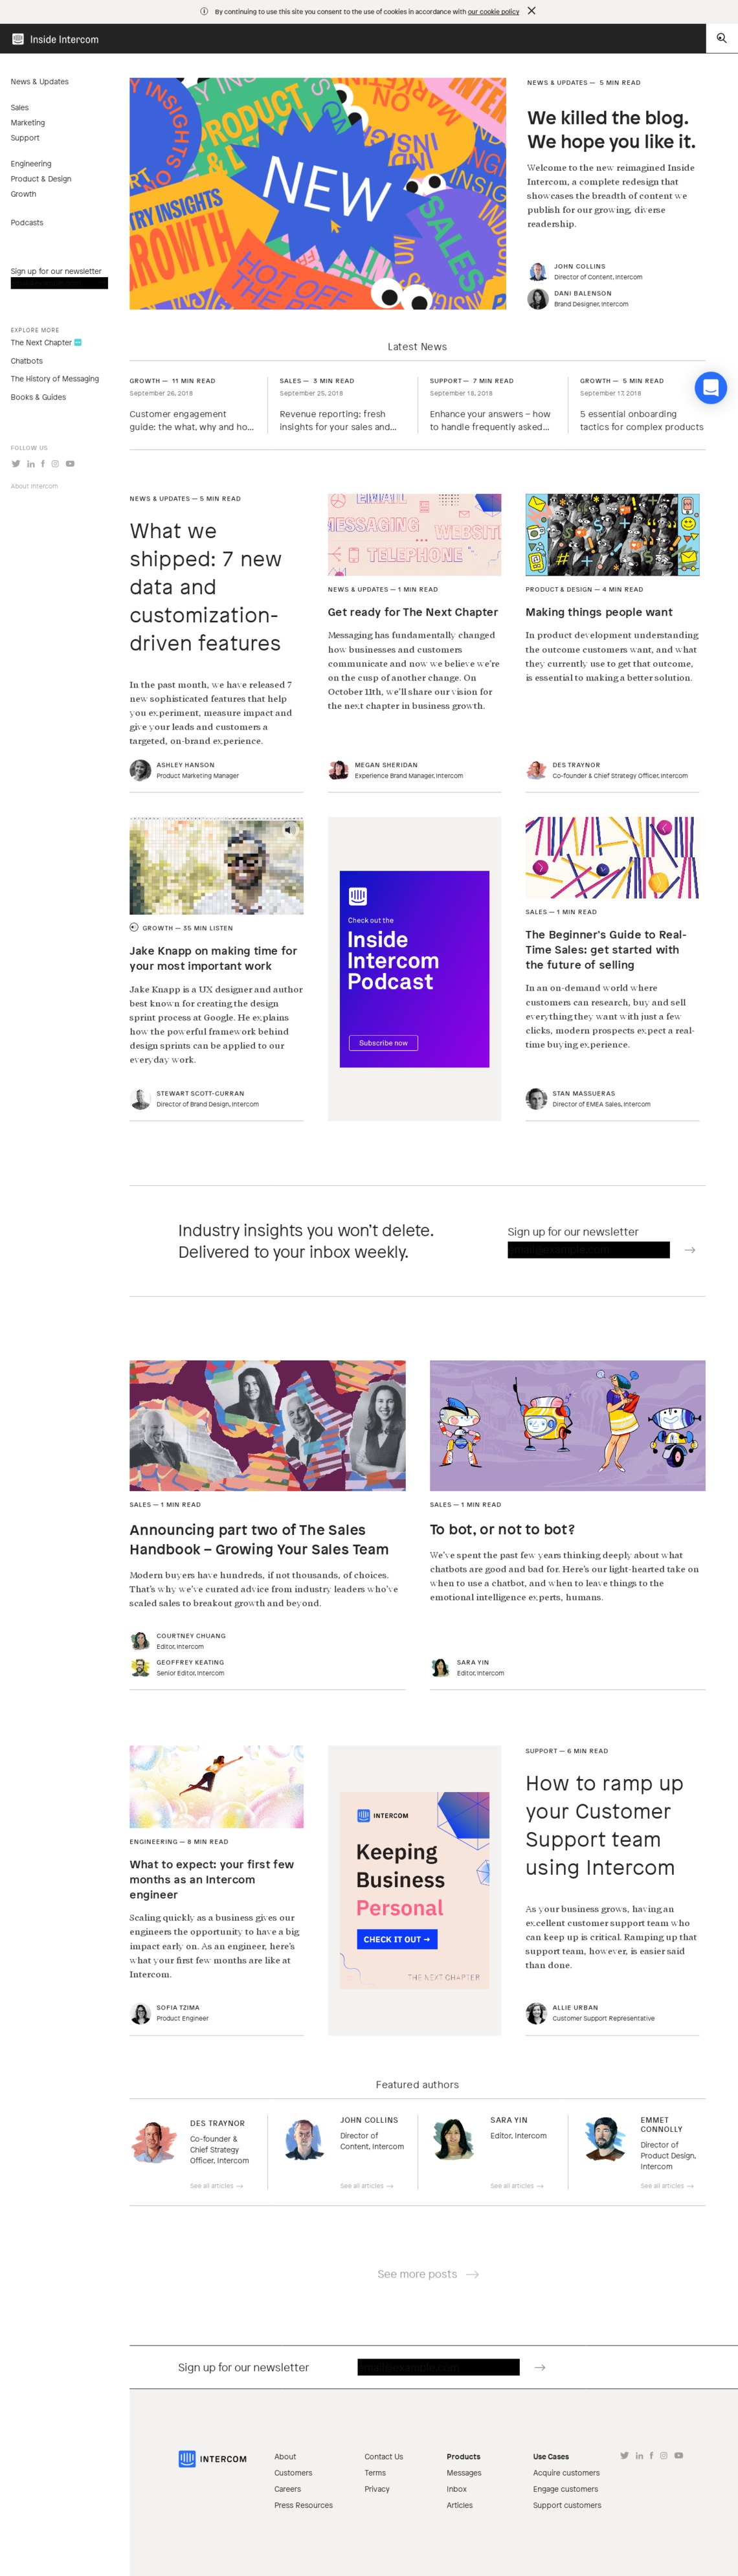 Inside Intercom - Articles on Sales, Marketing, Support and more